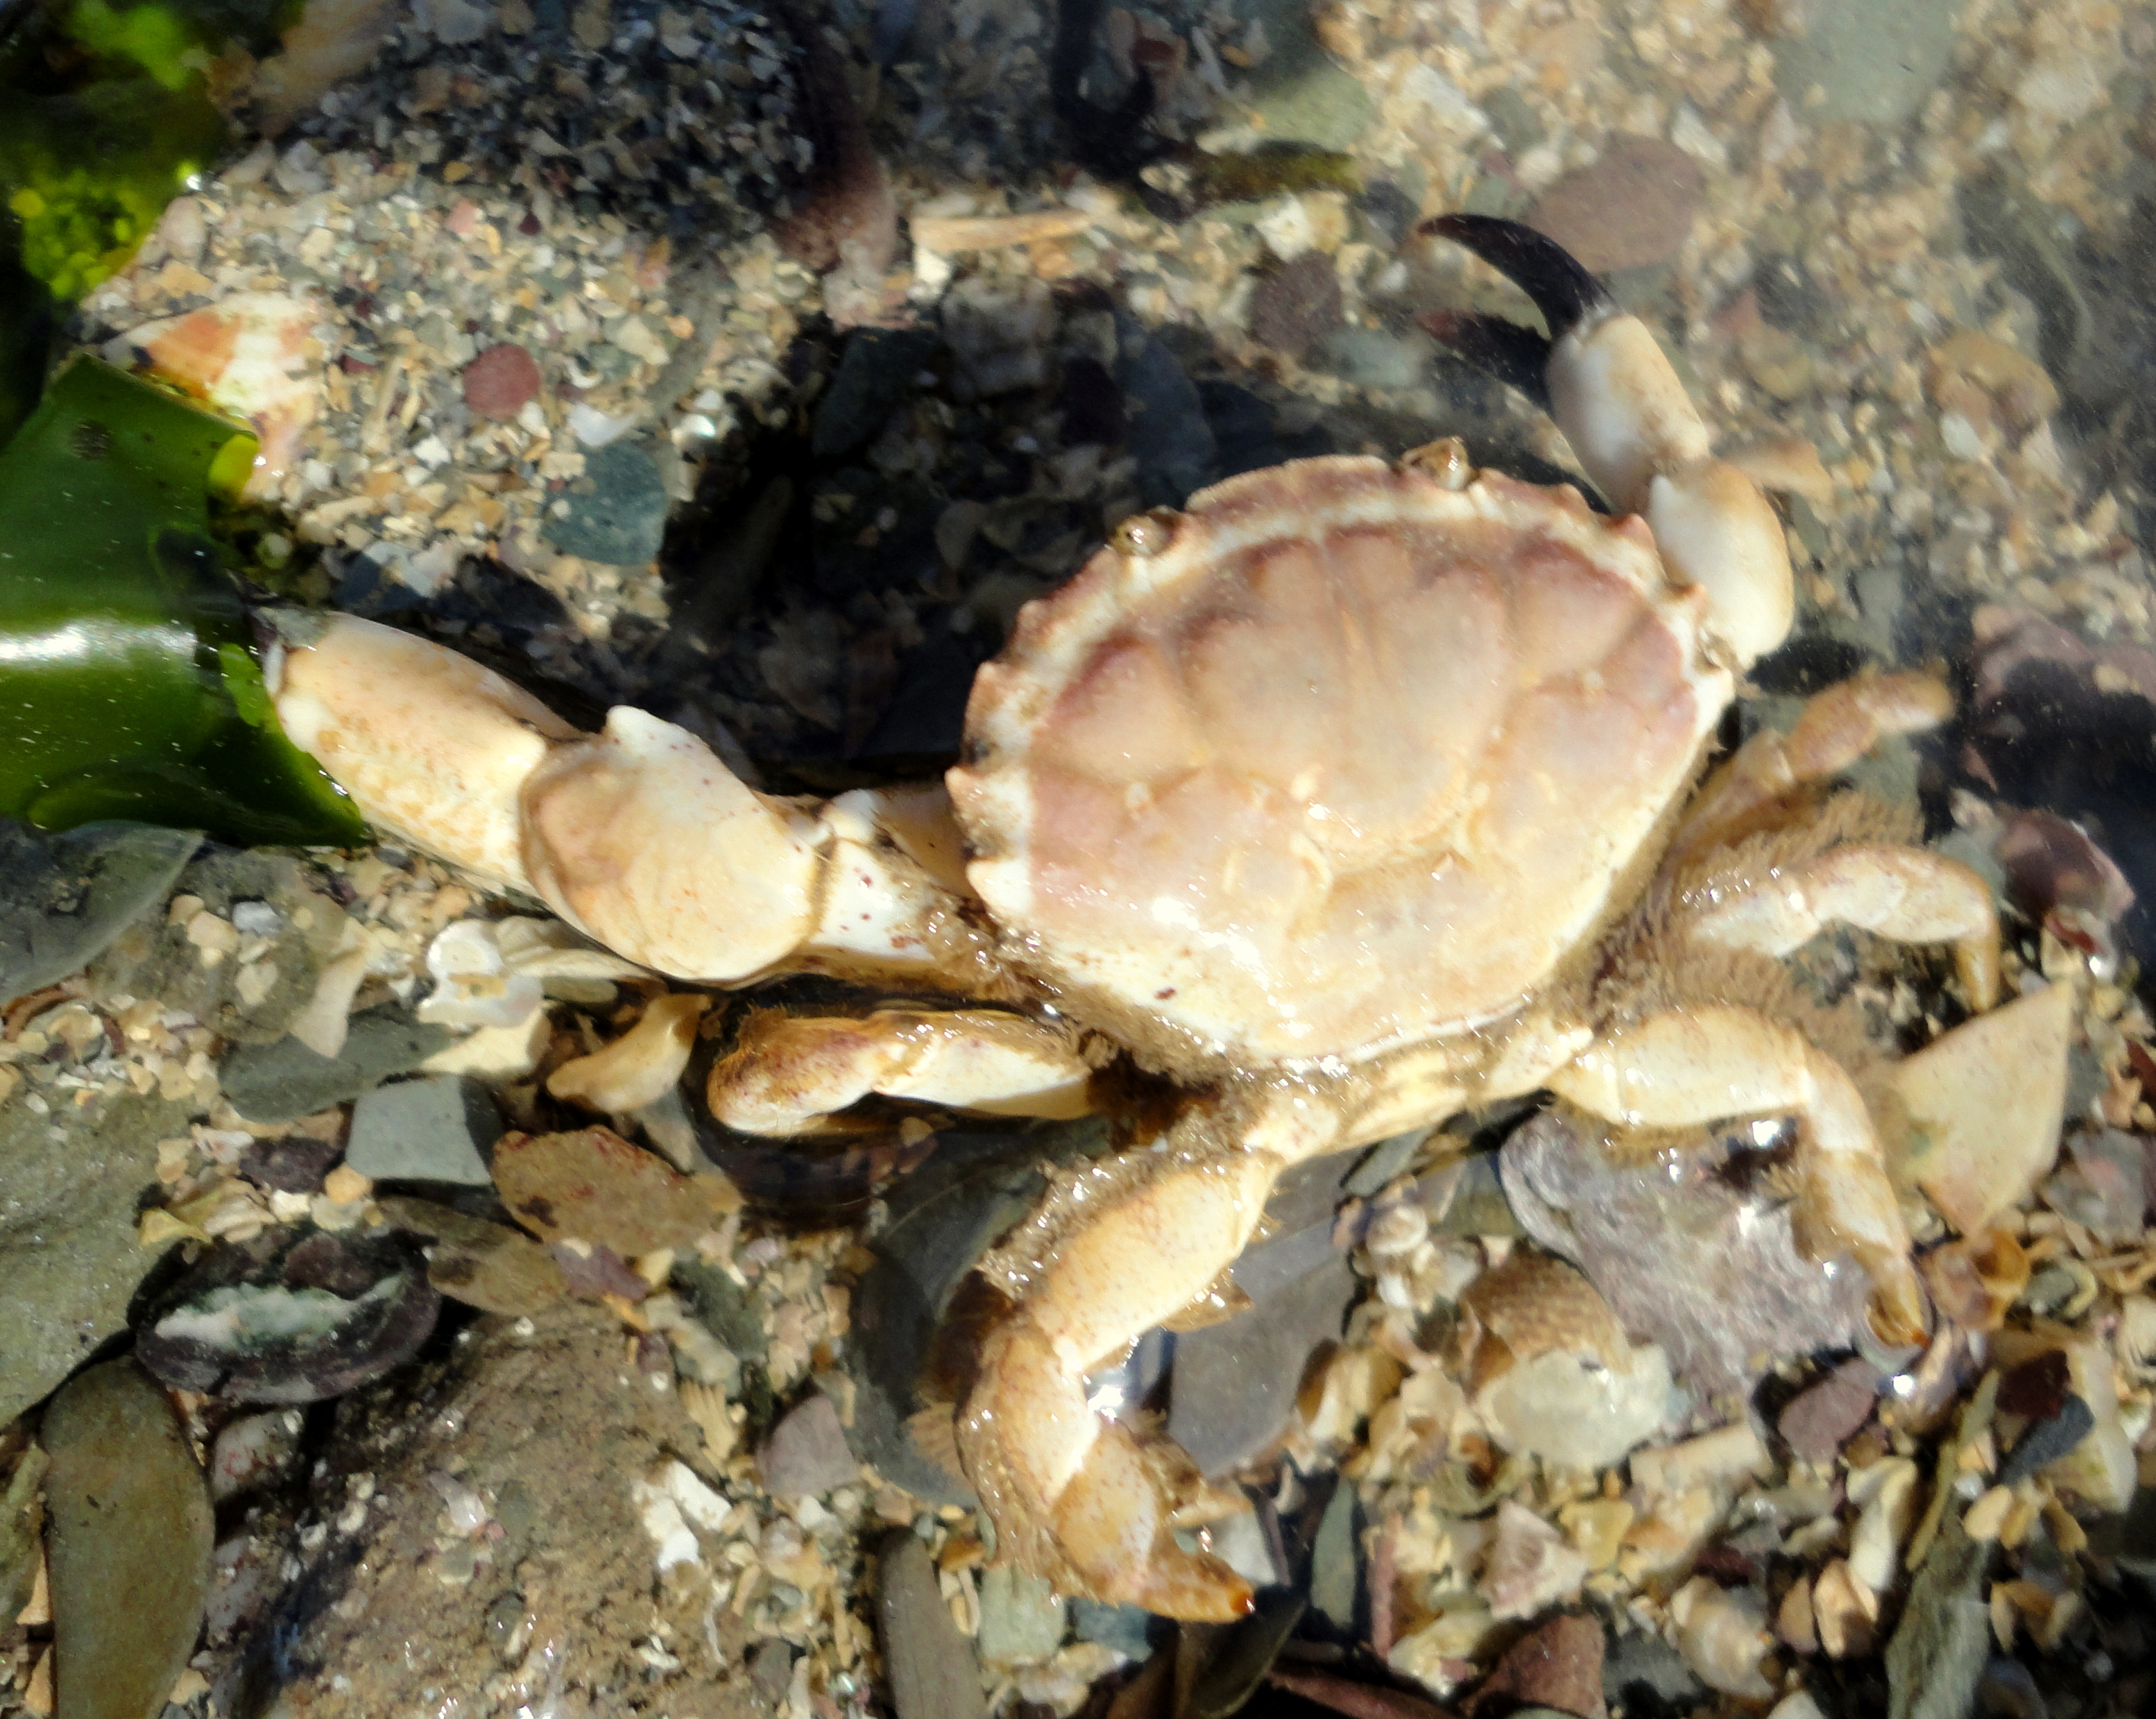 A Xantho pilipes crab - the notched sides to the shell and the hairy back legs identify this crab.